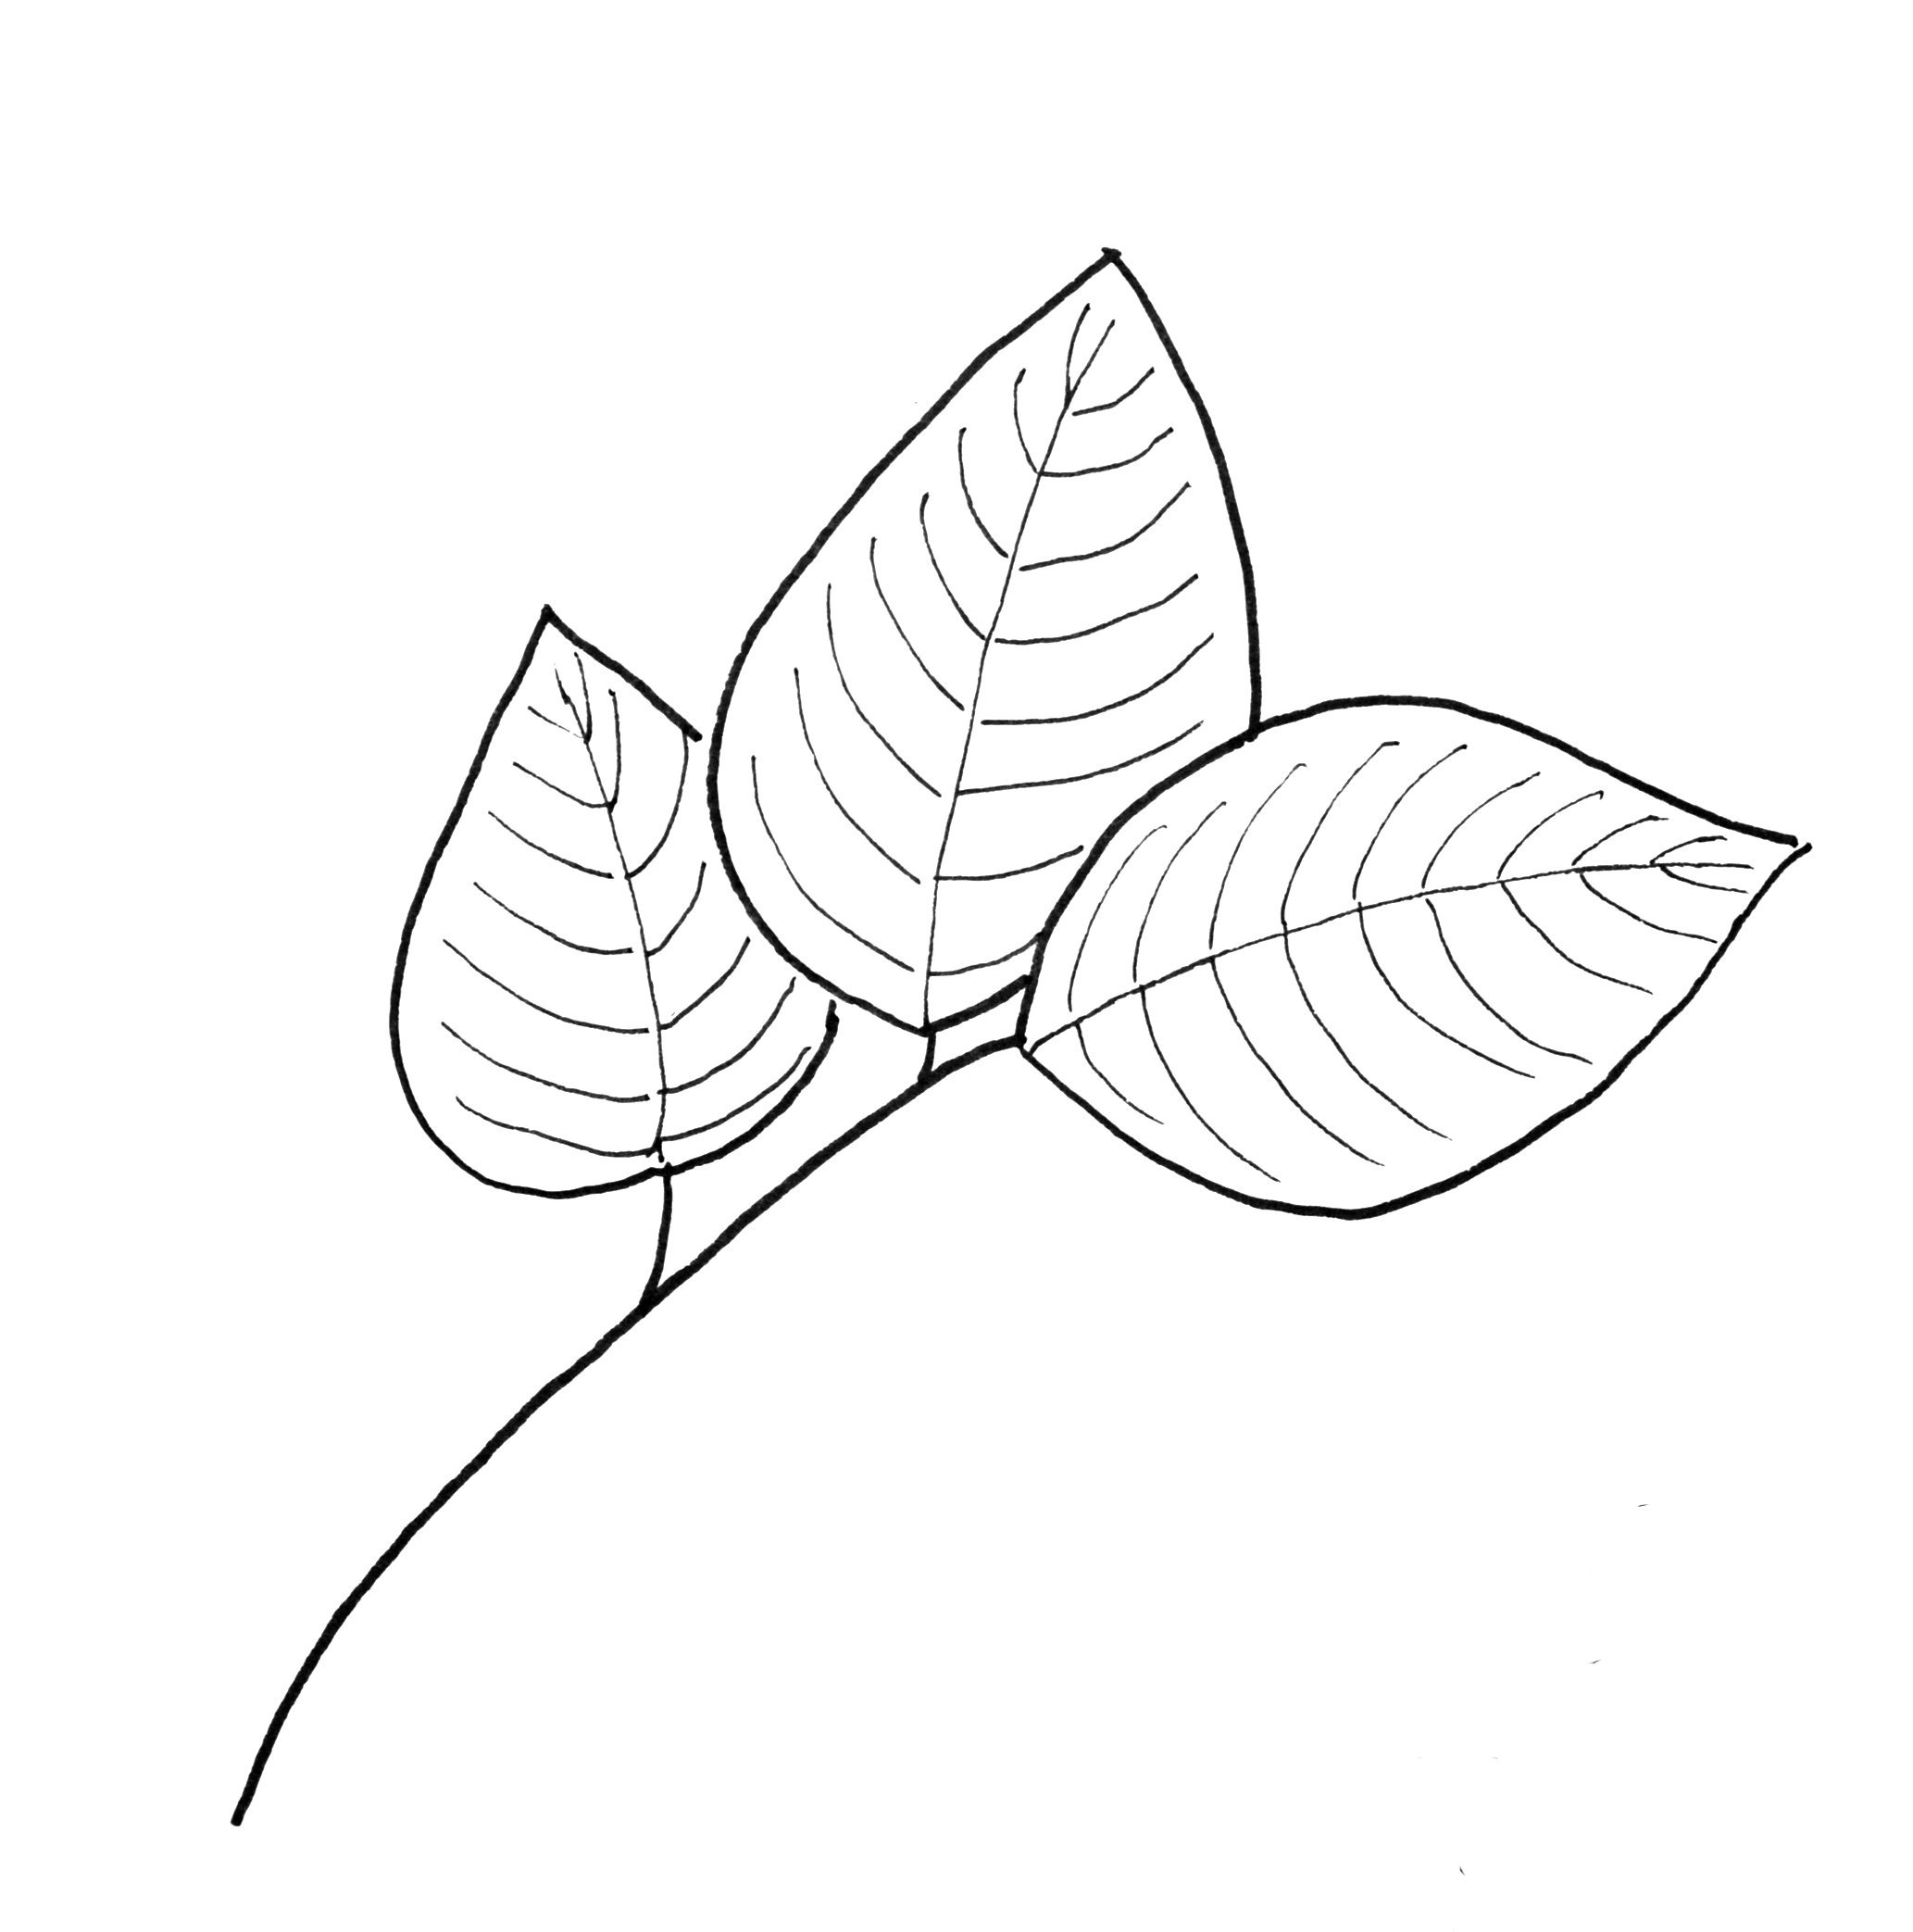 Drawn leaves pattern Just Fall dogwood leaves Printables